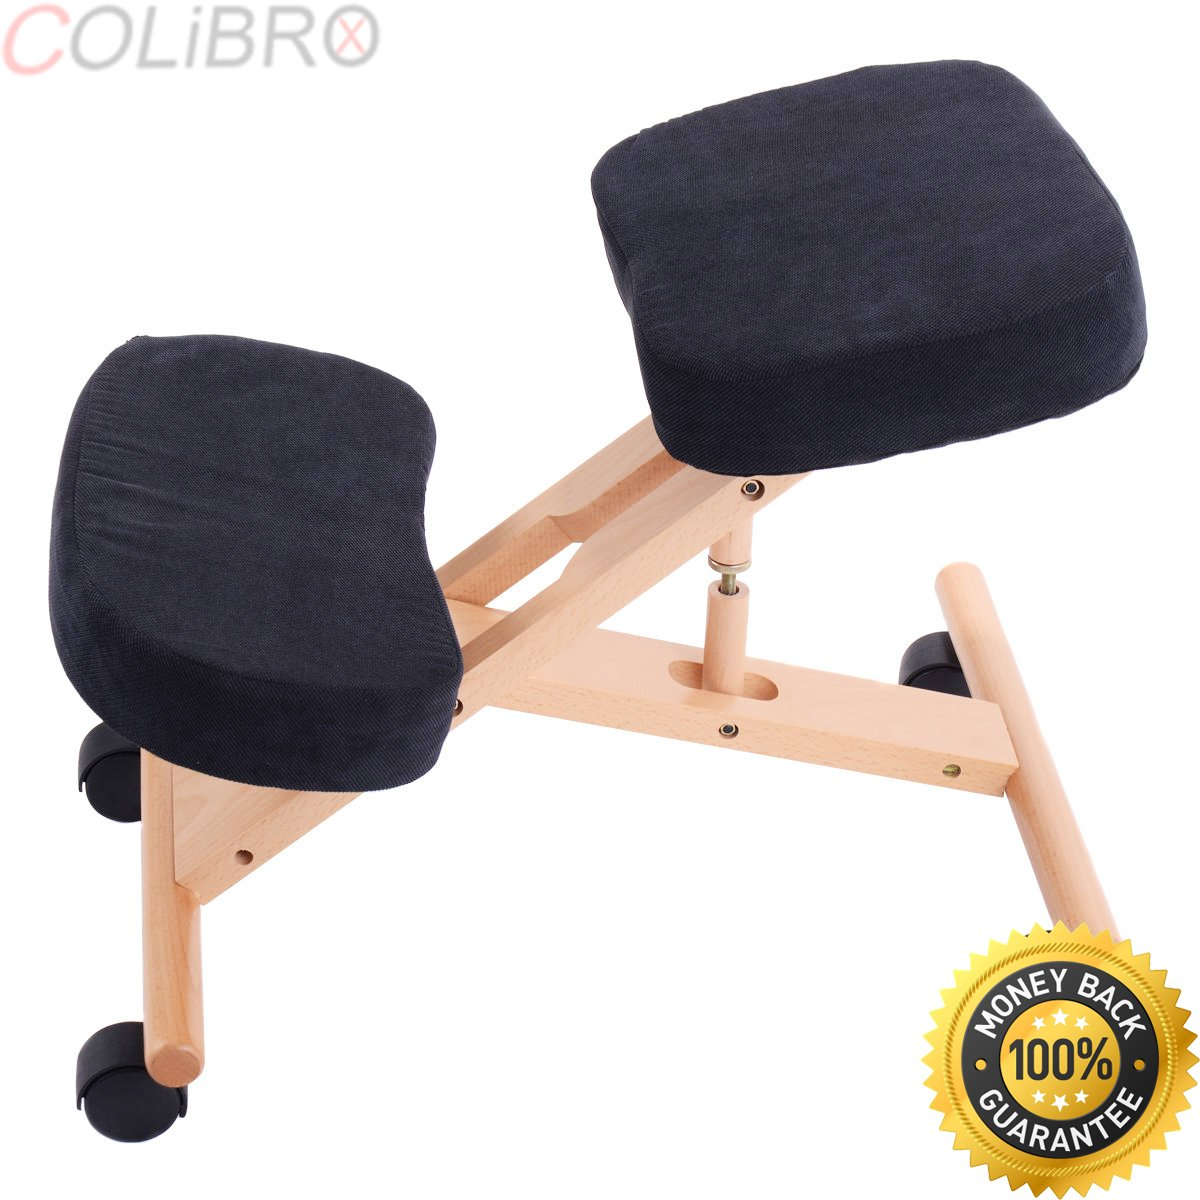 COLIBROX--Ergonomic Kneeling Chair Wooden Adjustable Mobile Padded Seat and Knee Rest New. best ergonomic kneeling chair. best kneeling chair amazon. sleekform chair. Mobile Padded Seat. by COLIBROX